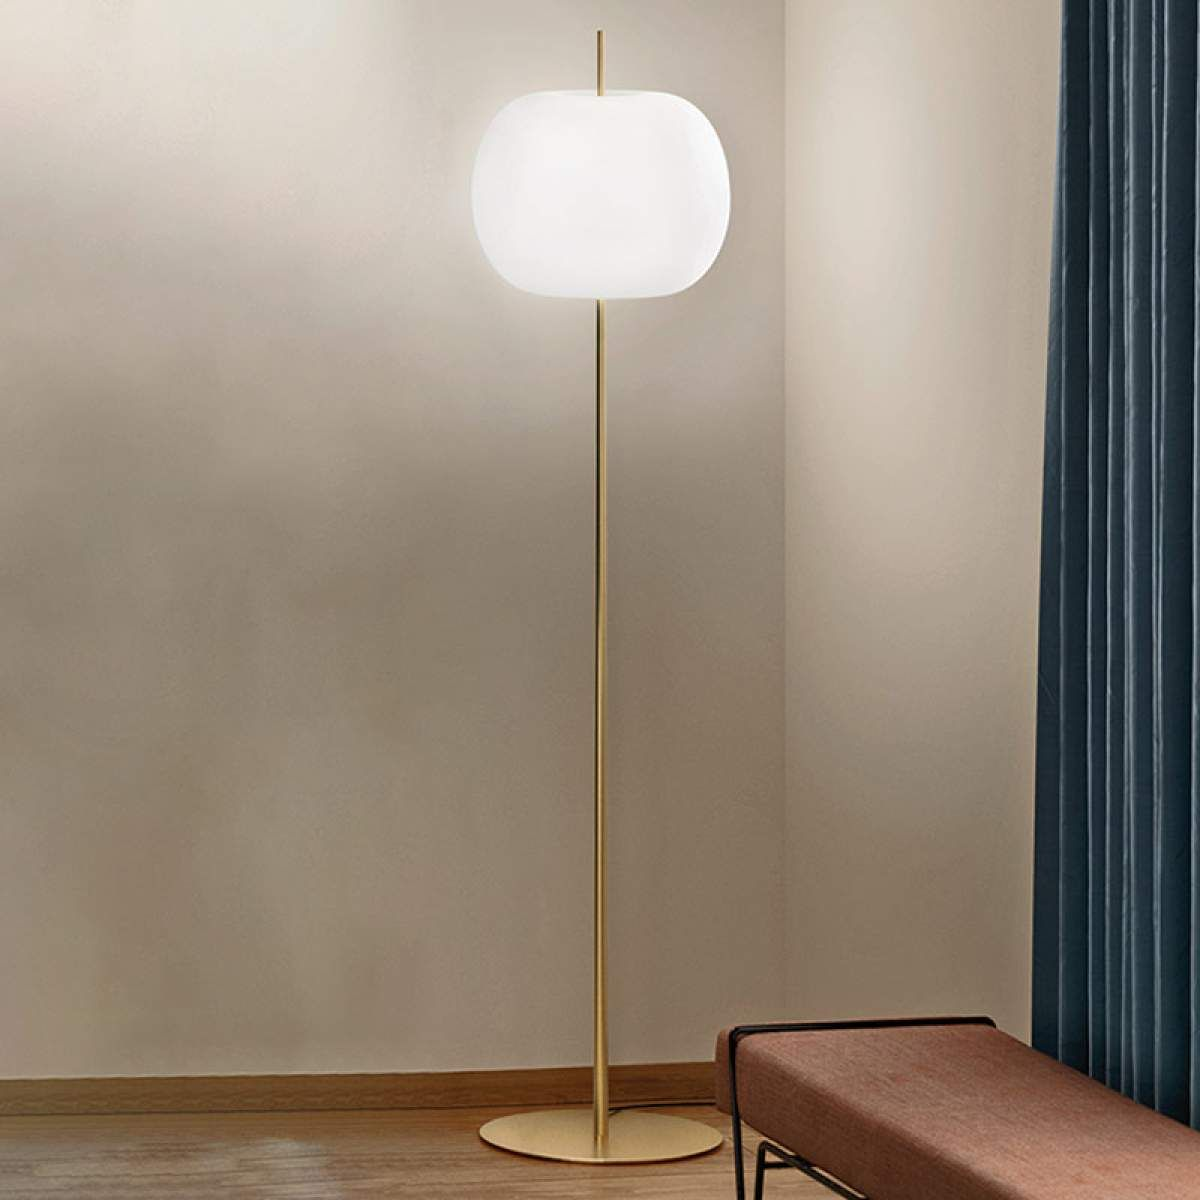 Design Stehlampe Led Dimmbar Zuhause